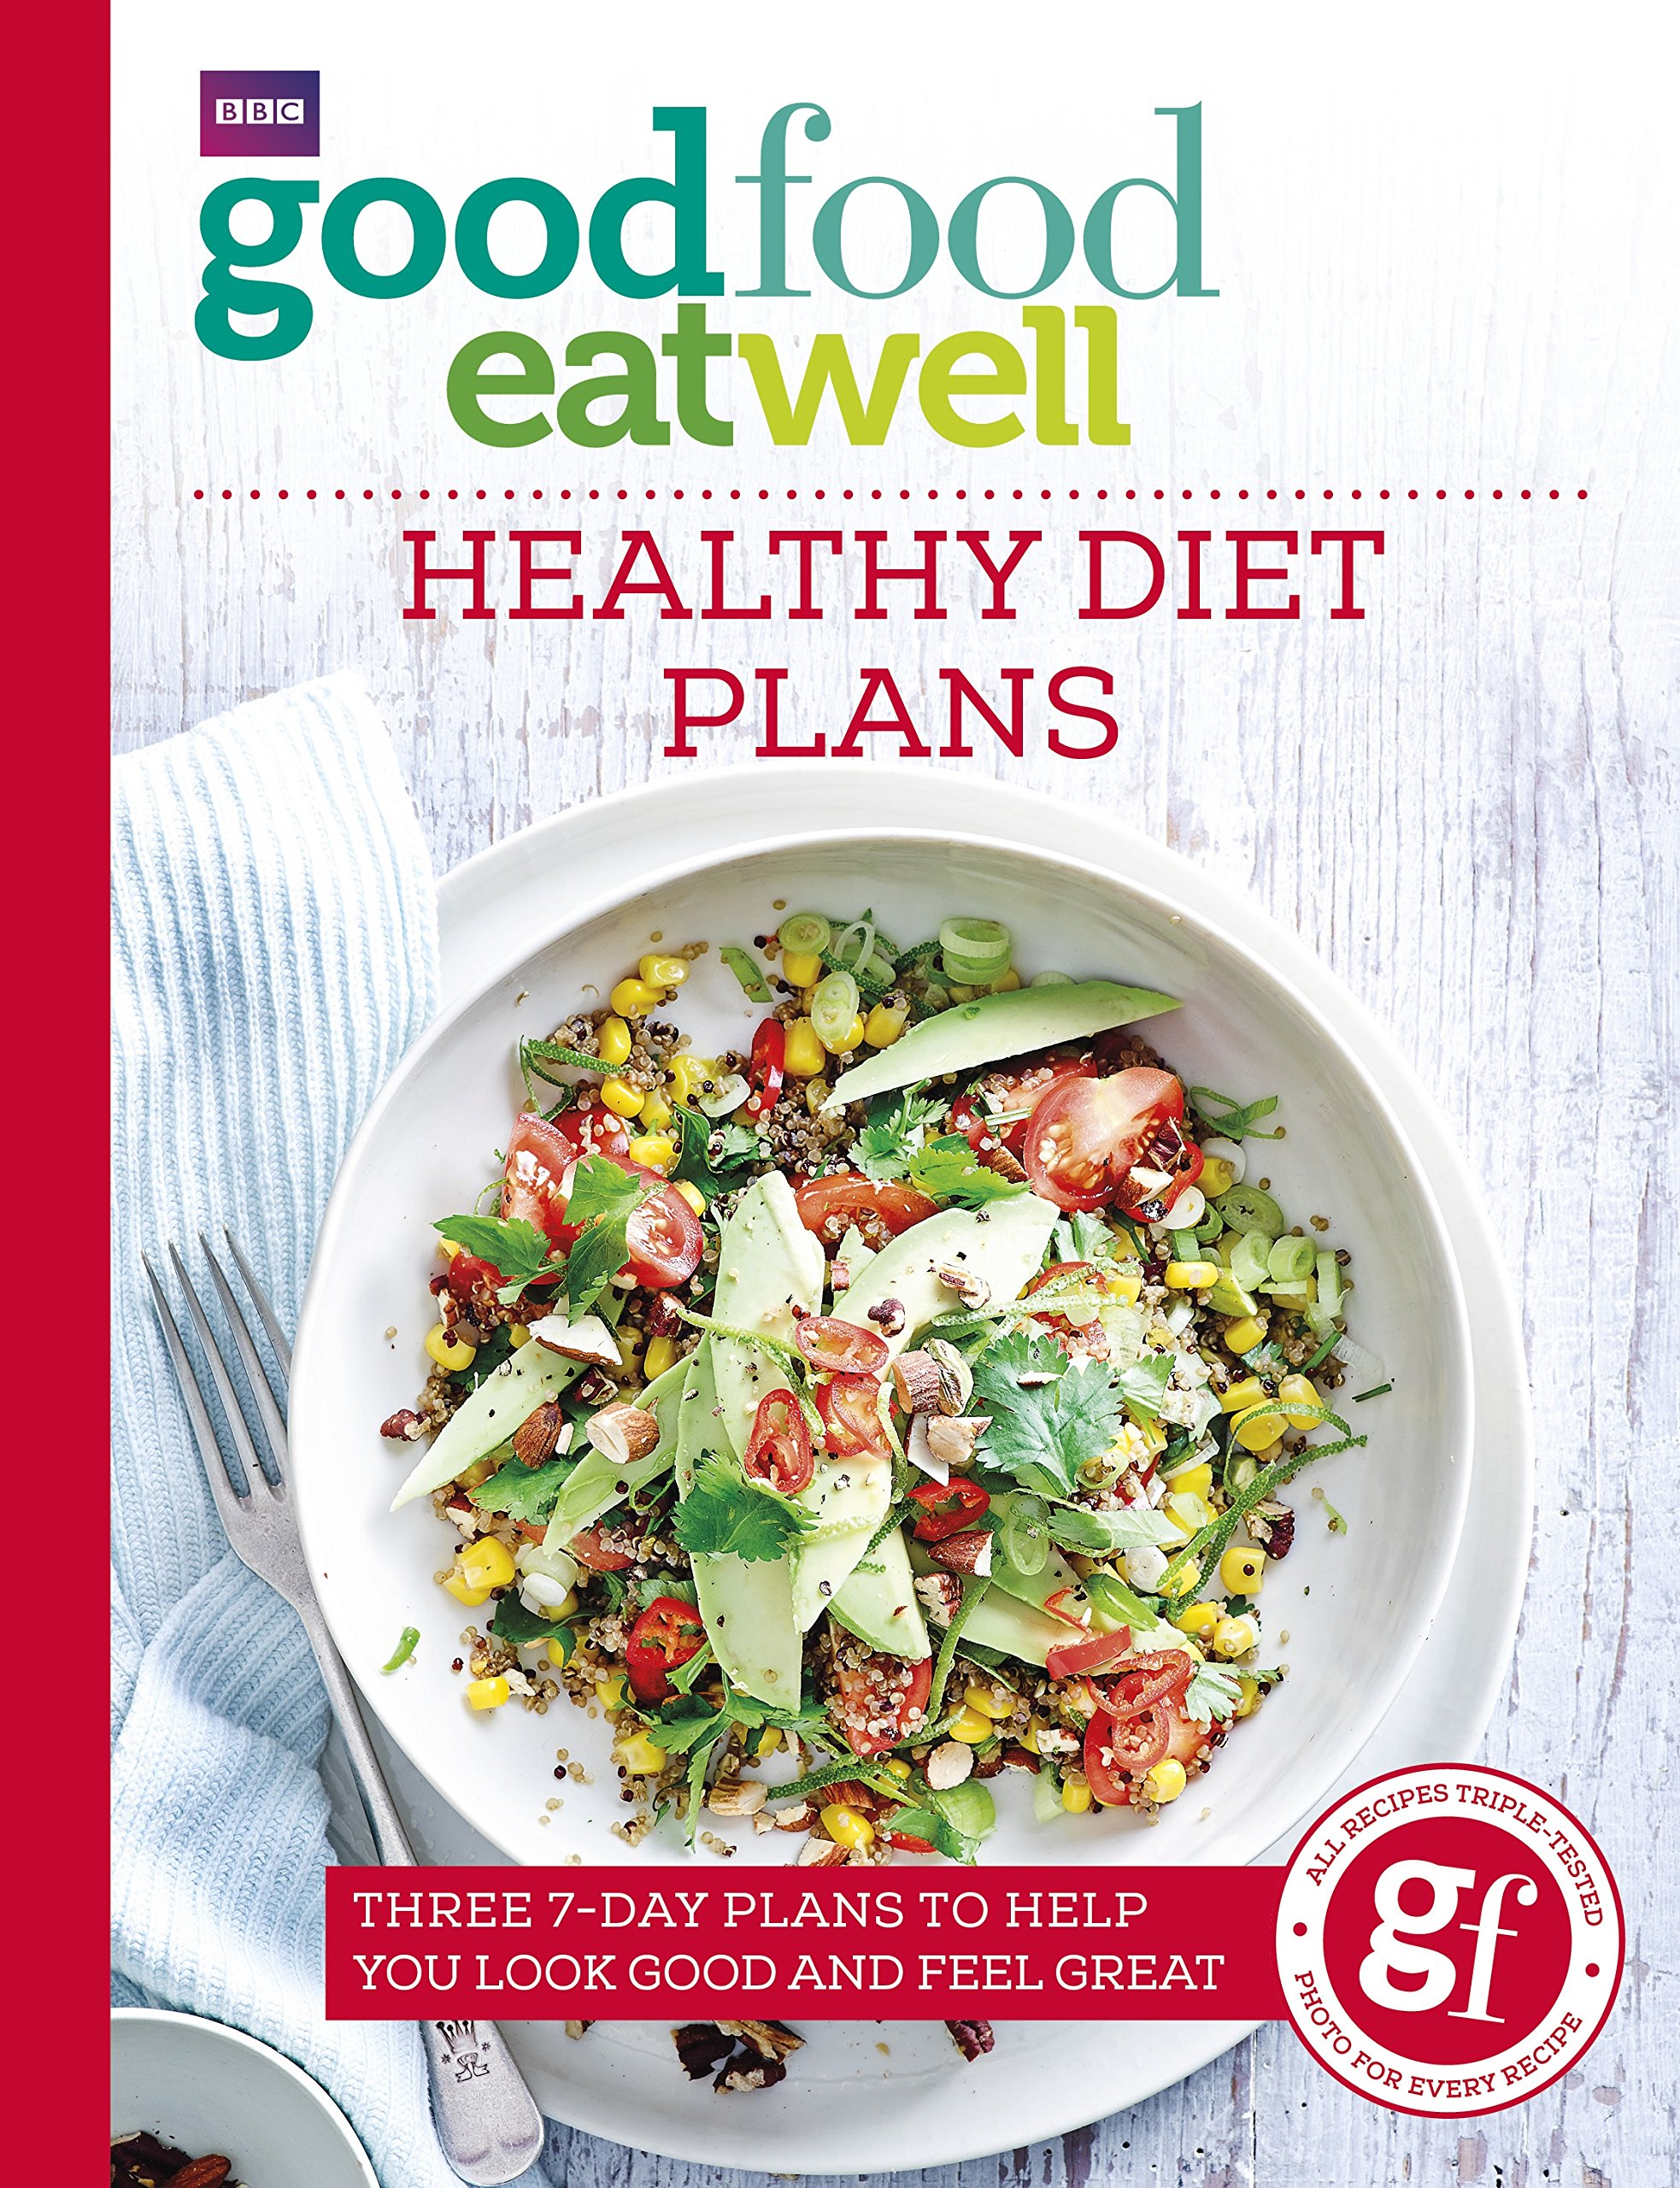 Good Food Eat Well Healthy Diet Plans Amazon Co Uk Good Food Guides 9781785940743 Books